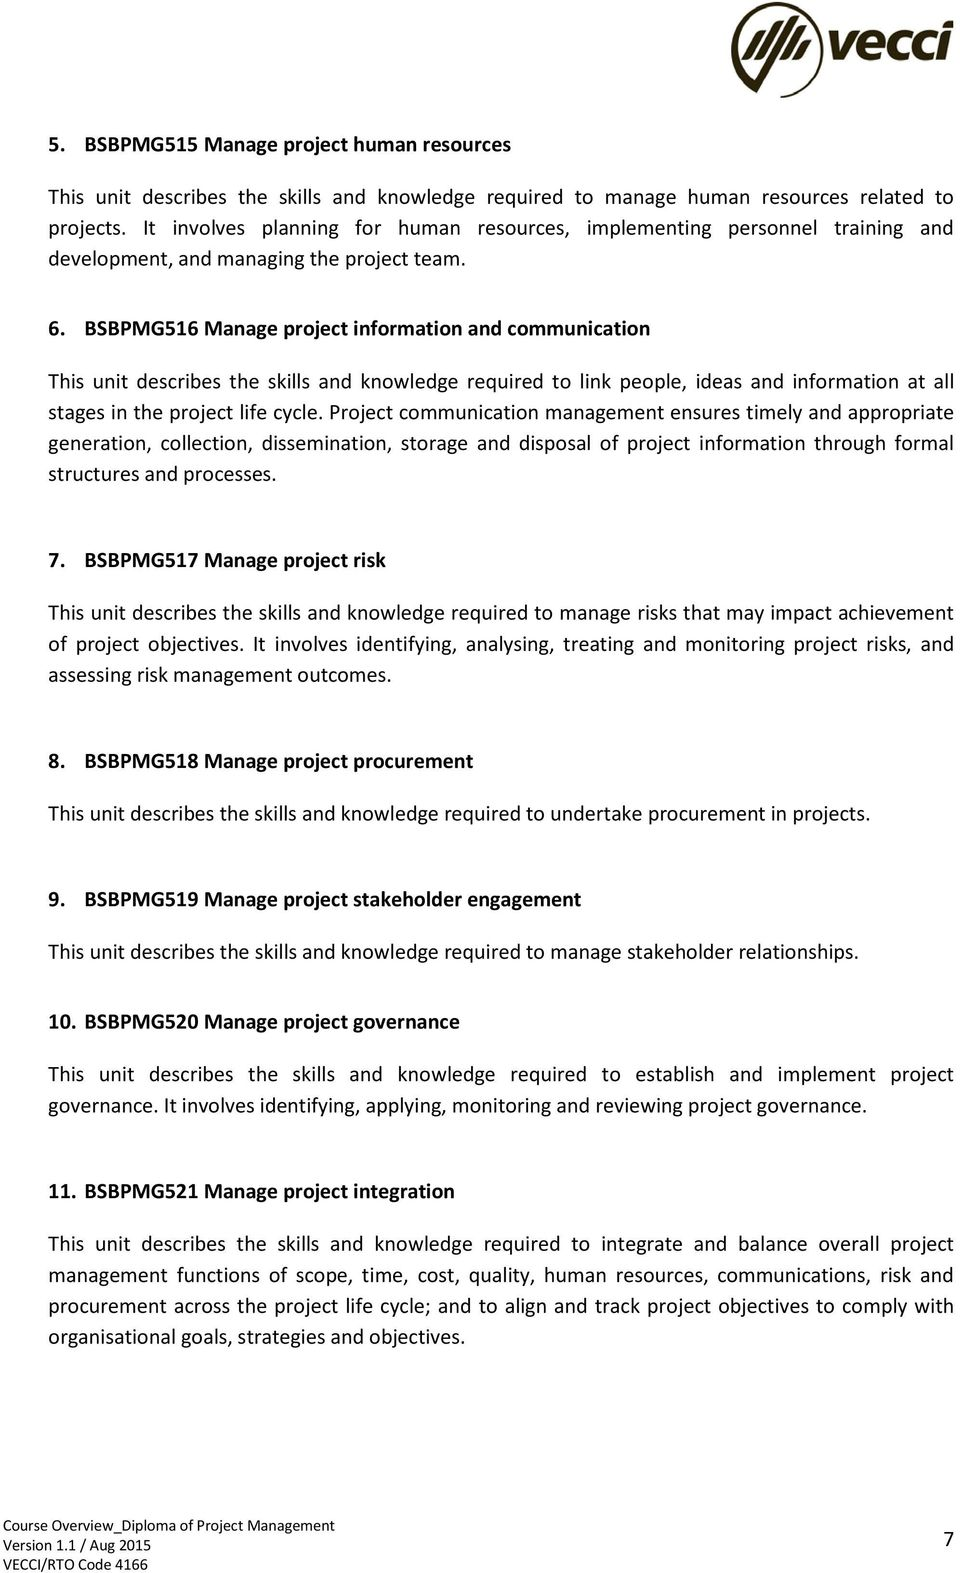 BSBPMG516 Manage project information and communication This unit describes the skills and knowledge required to link people, ideas and information at all stages in the project life cycle.